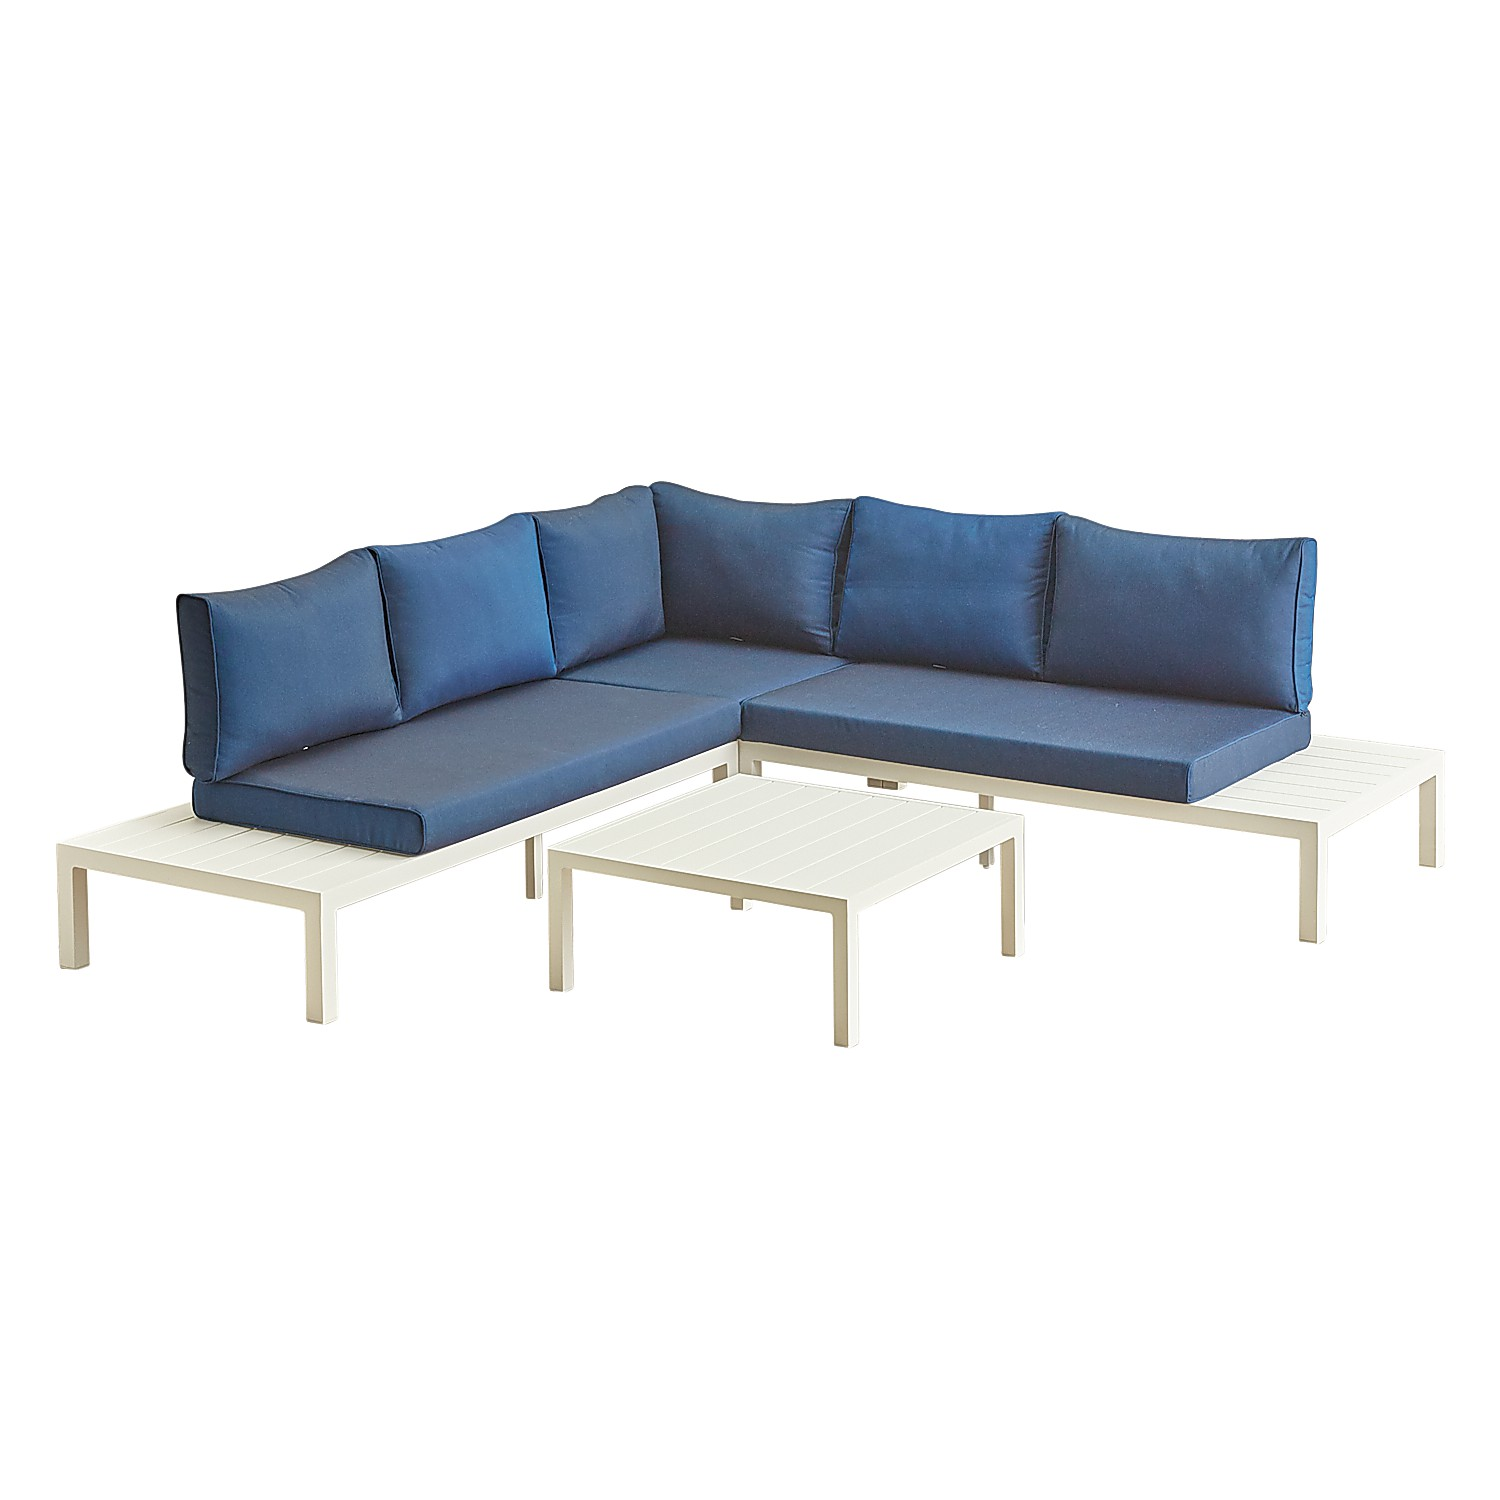 White Aluminum Sectional with Navy Cushions